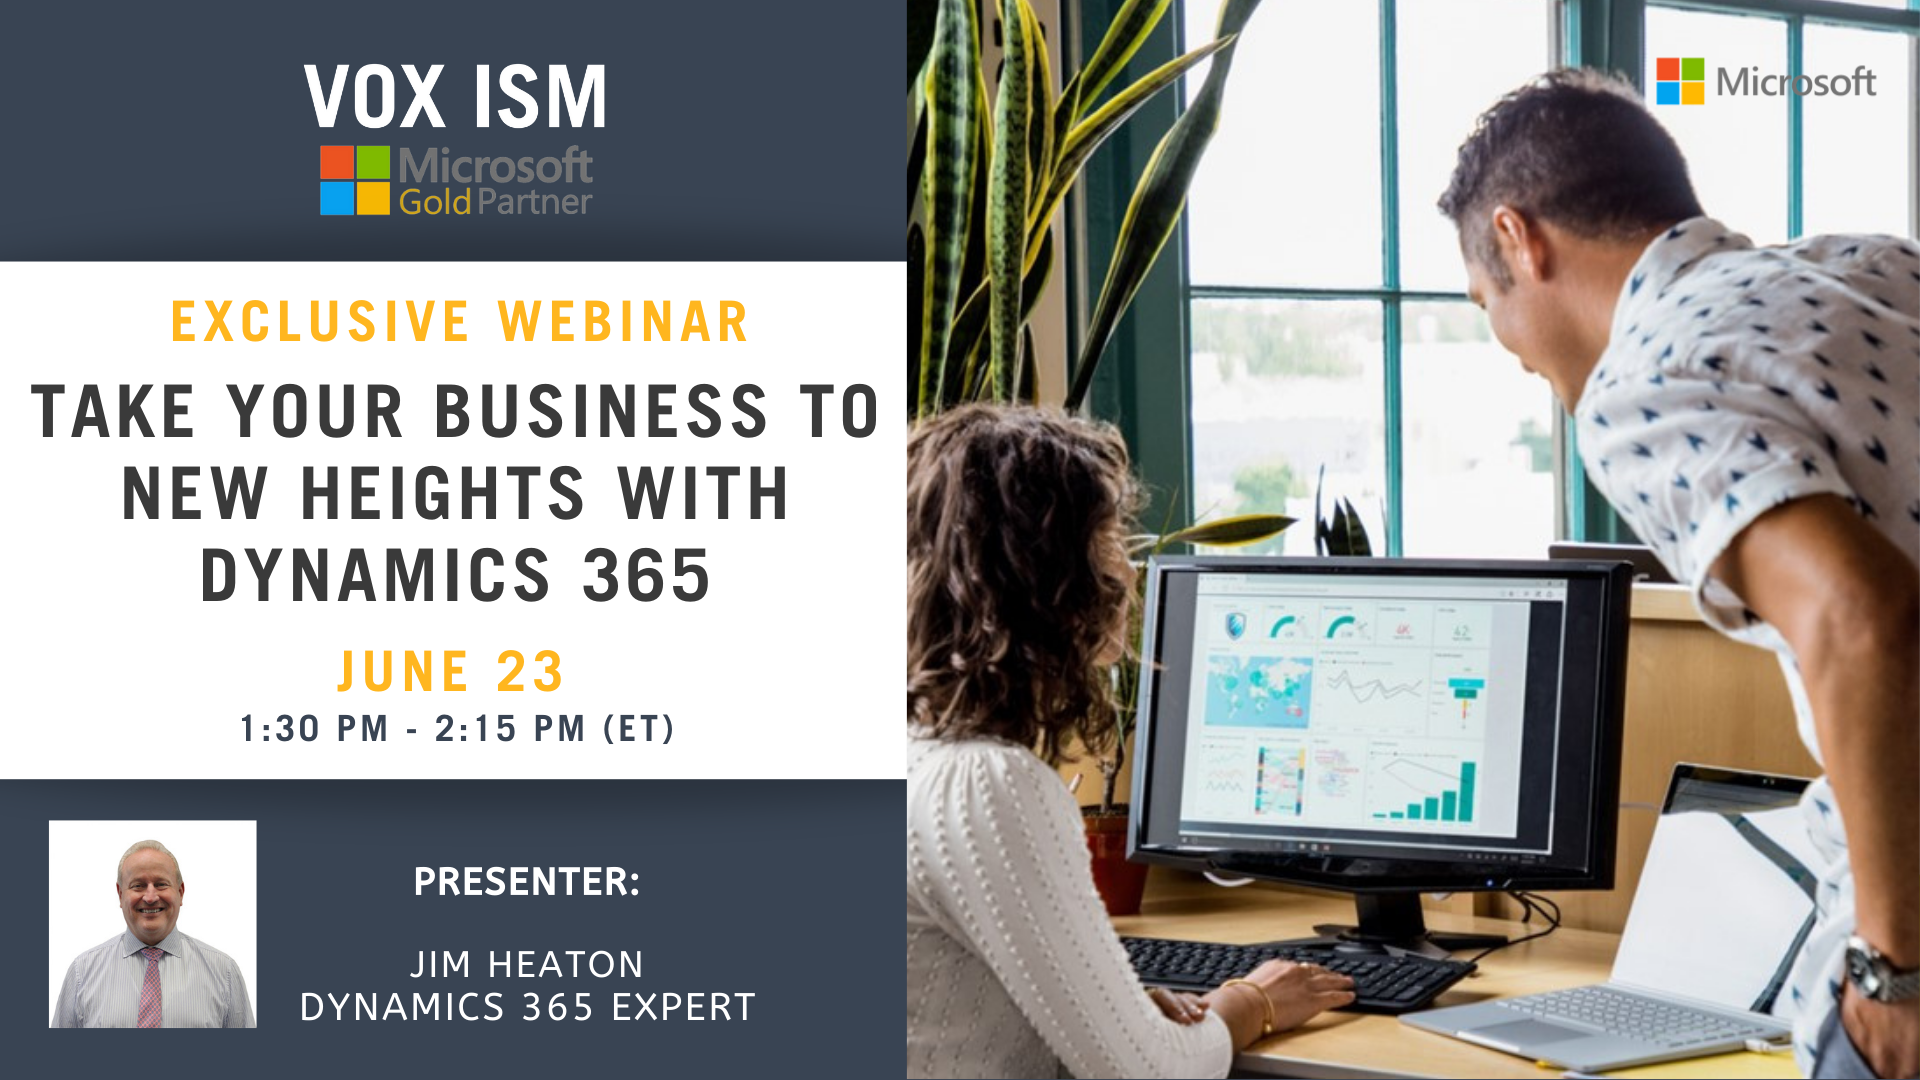 Take your business to new heights with Dynamics 365 - June 23 - Webinar - VOX ISM